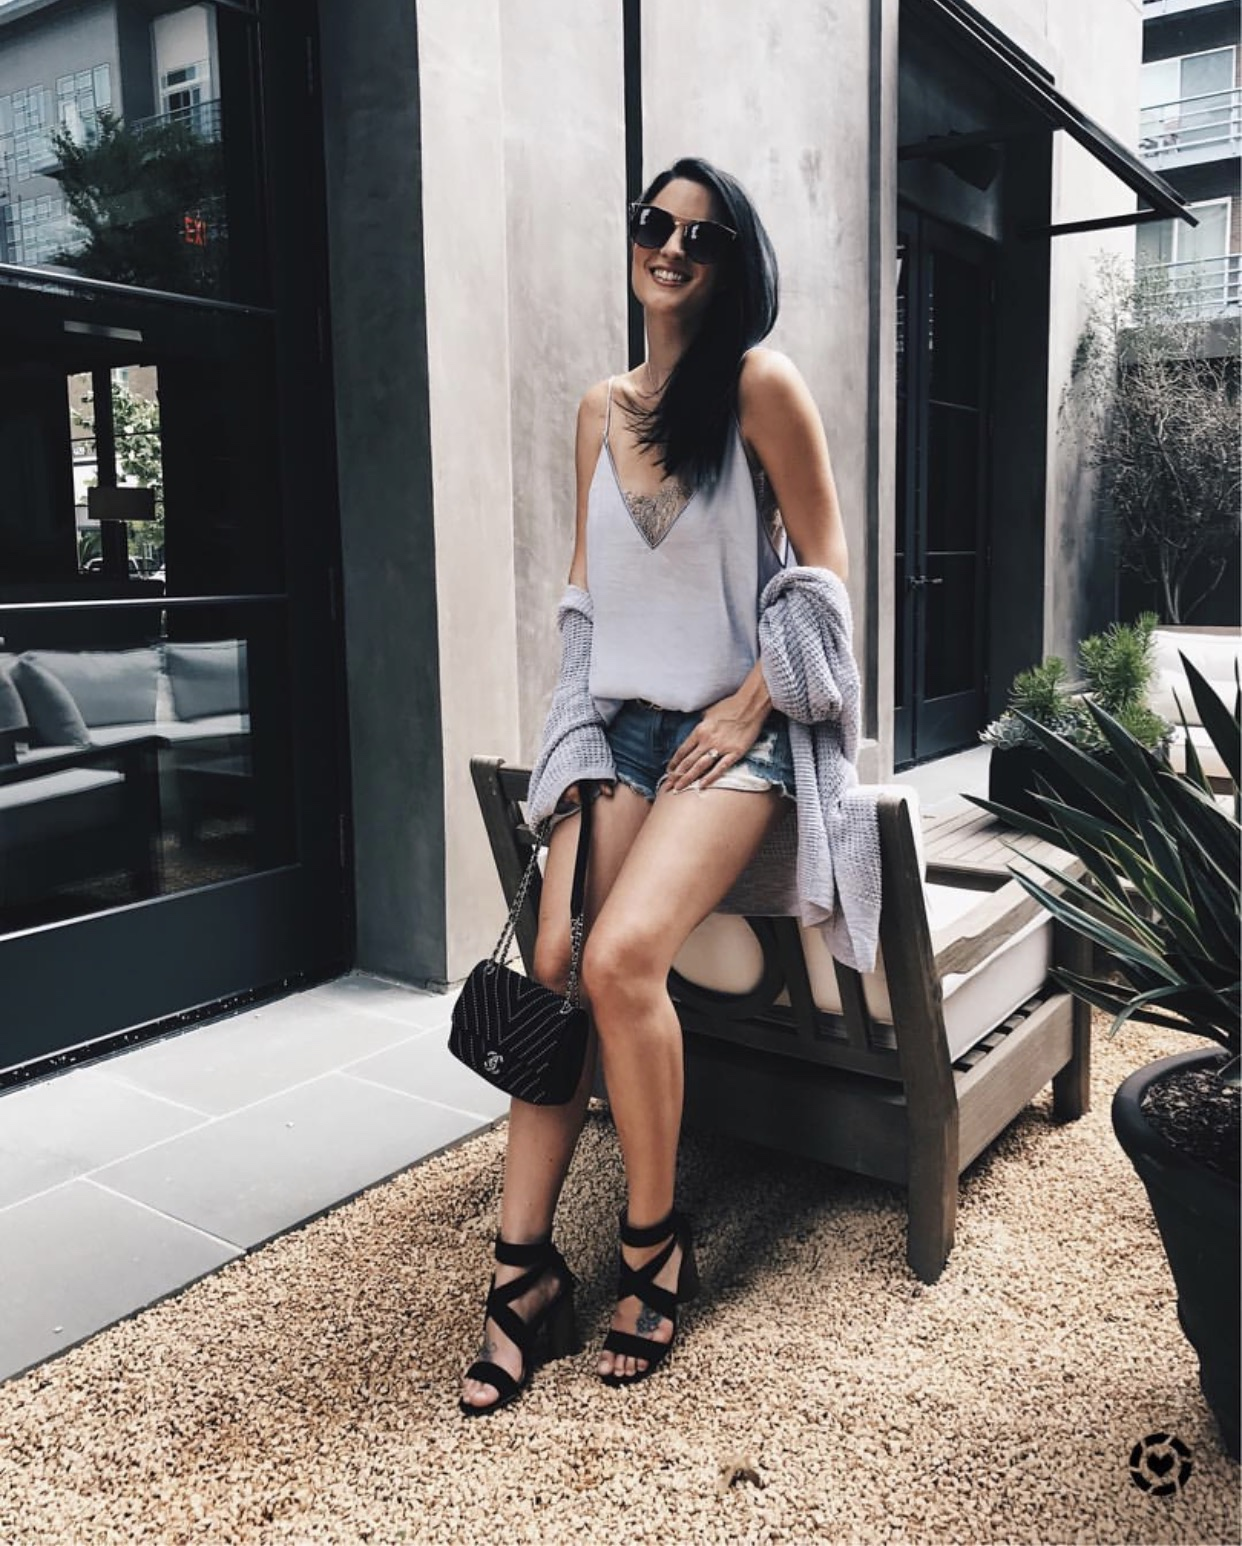 DTKAustin shares her favorite looks from her May Instagram posts over on the blog. The best of summer outfits all in one place! Click for more information and photos. | summer fashion tips | summer outfit ideas | summer style tips | what to wear for summer | warm weather fashion | fashion for summer | style tips for summer | outfit ideas for summer || Dressed to Kill